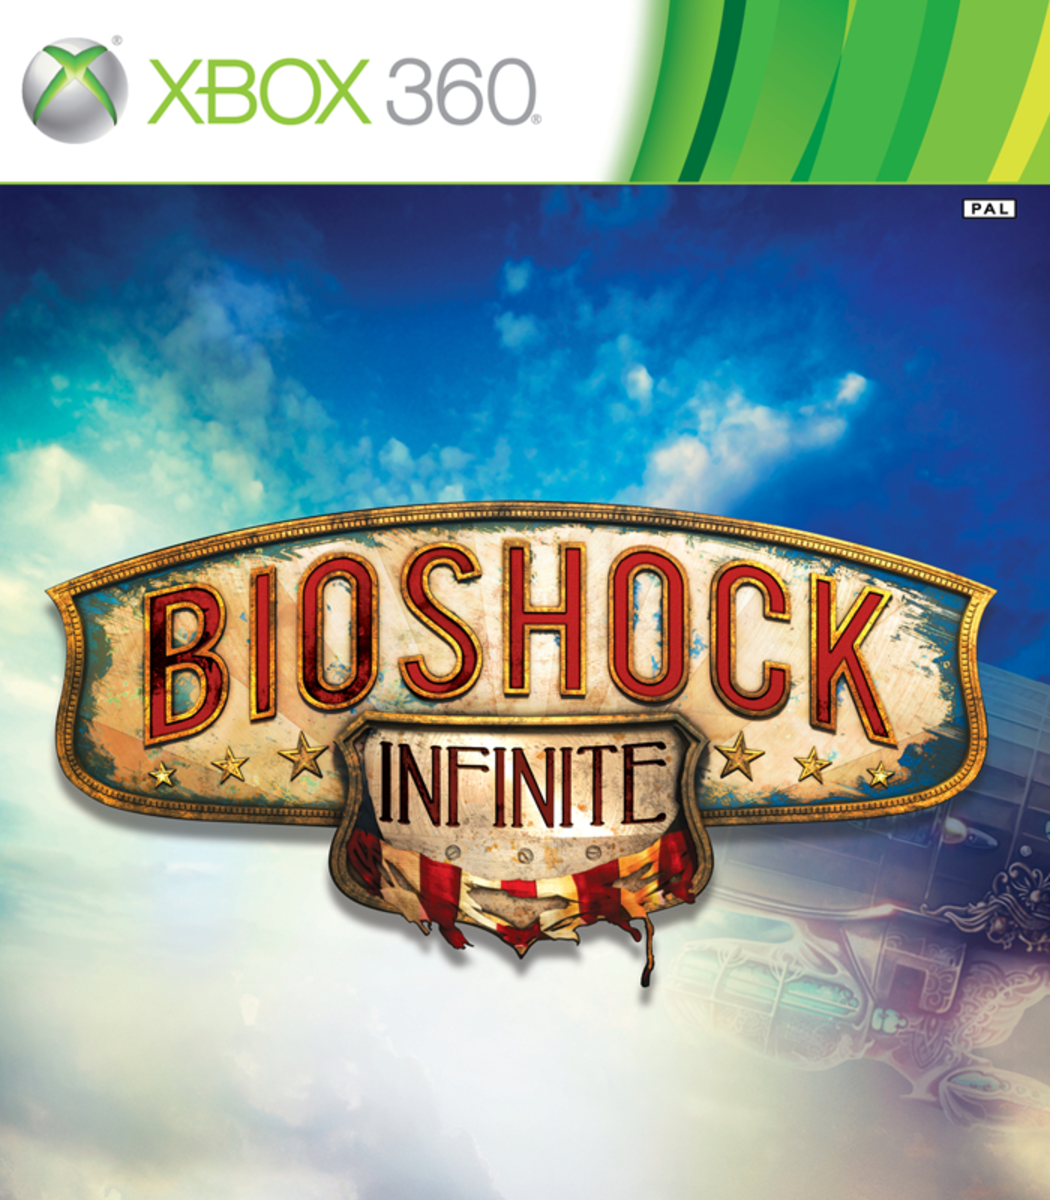 Bioshock: Infinite XBOX 360 game cover